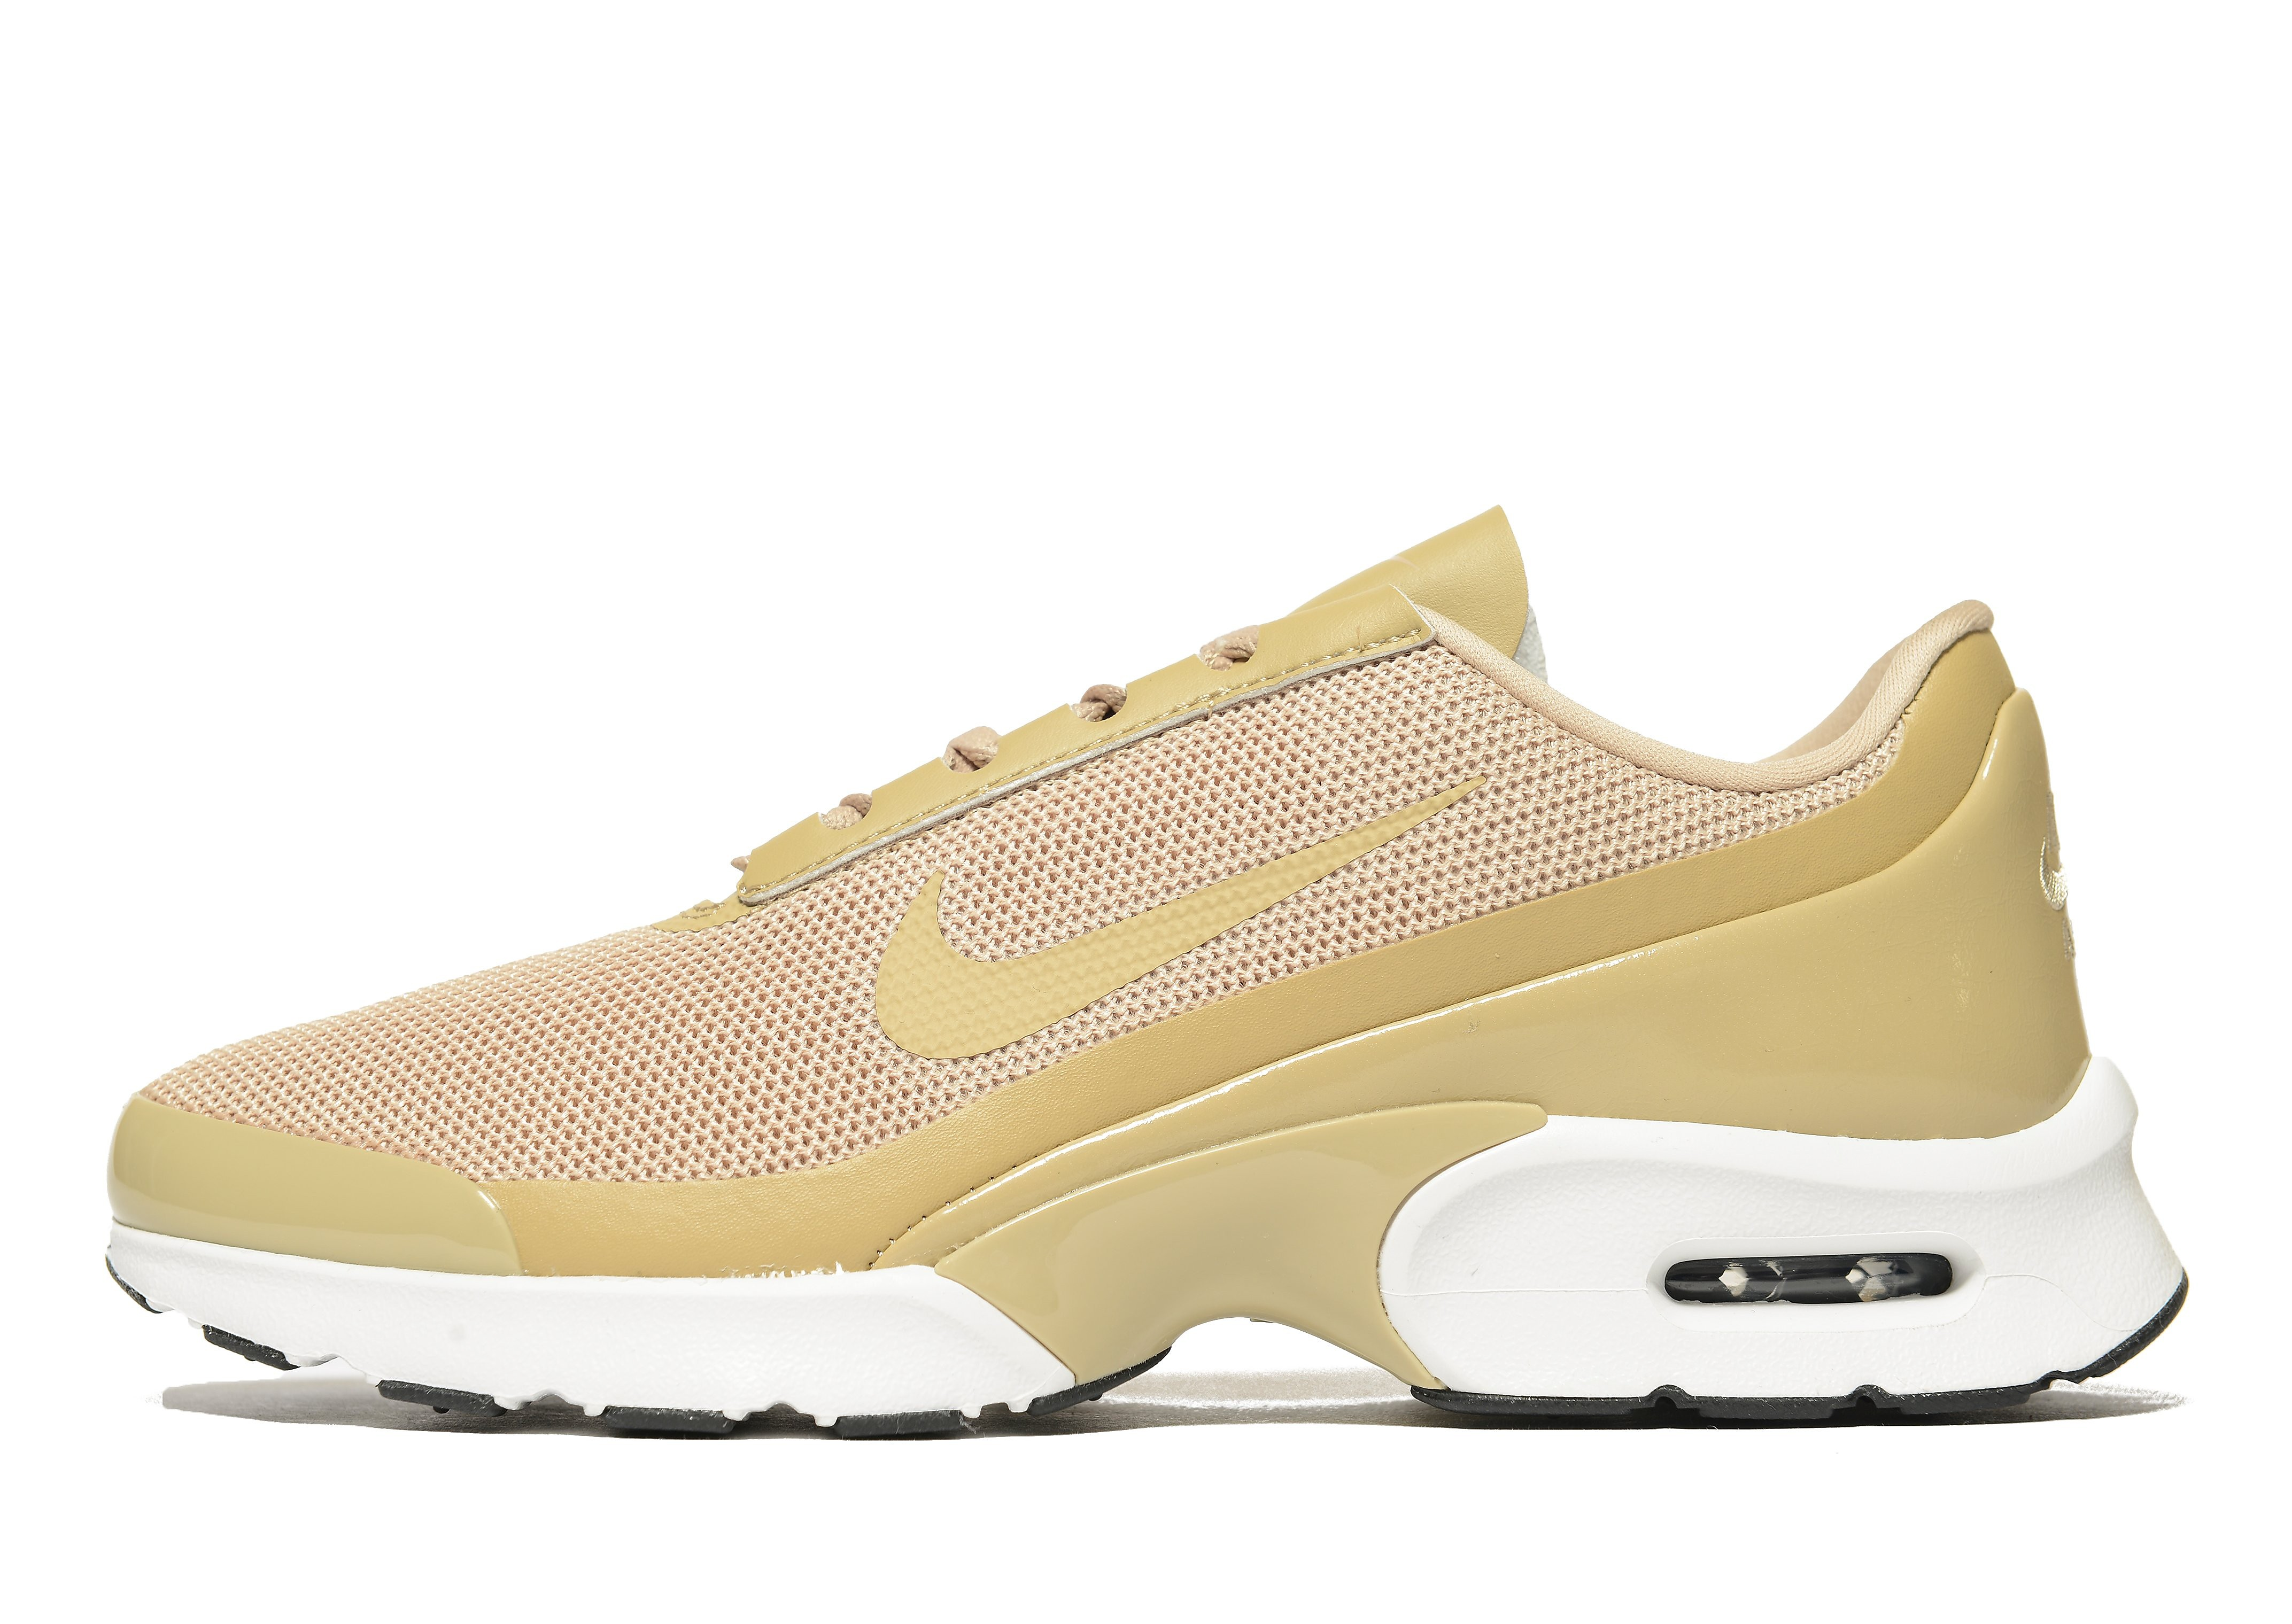 Nike Air Max Jewel Women's